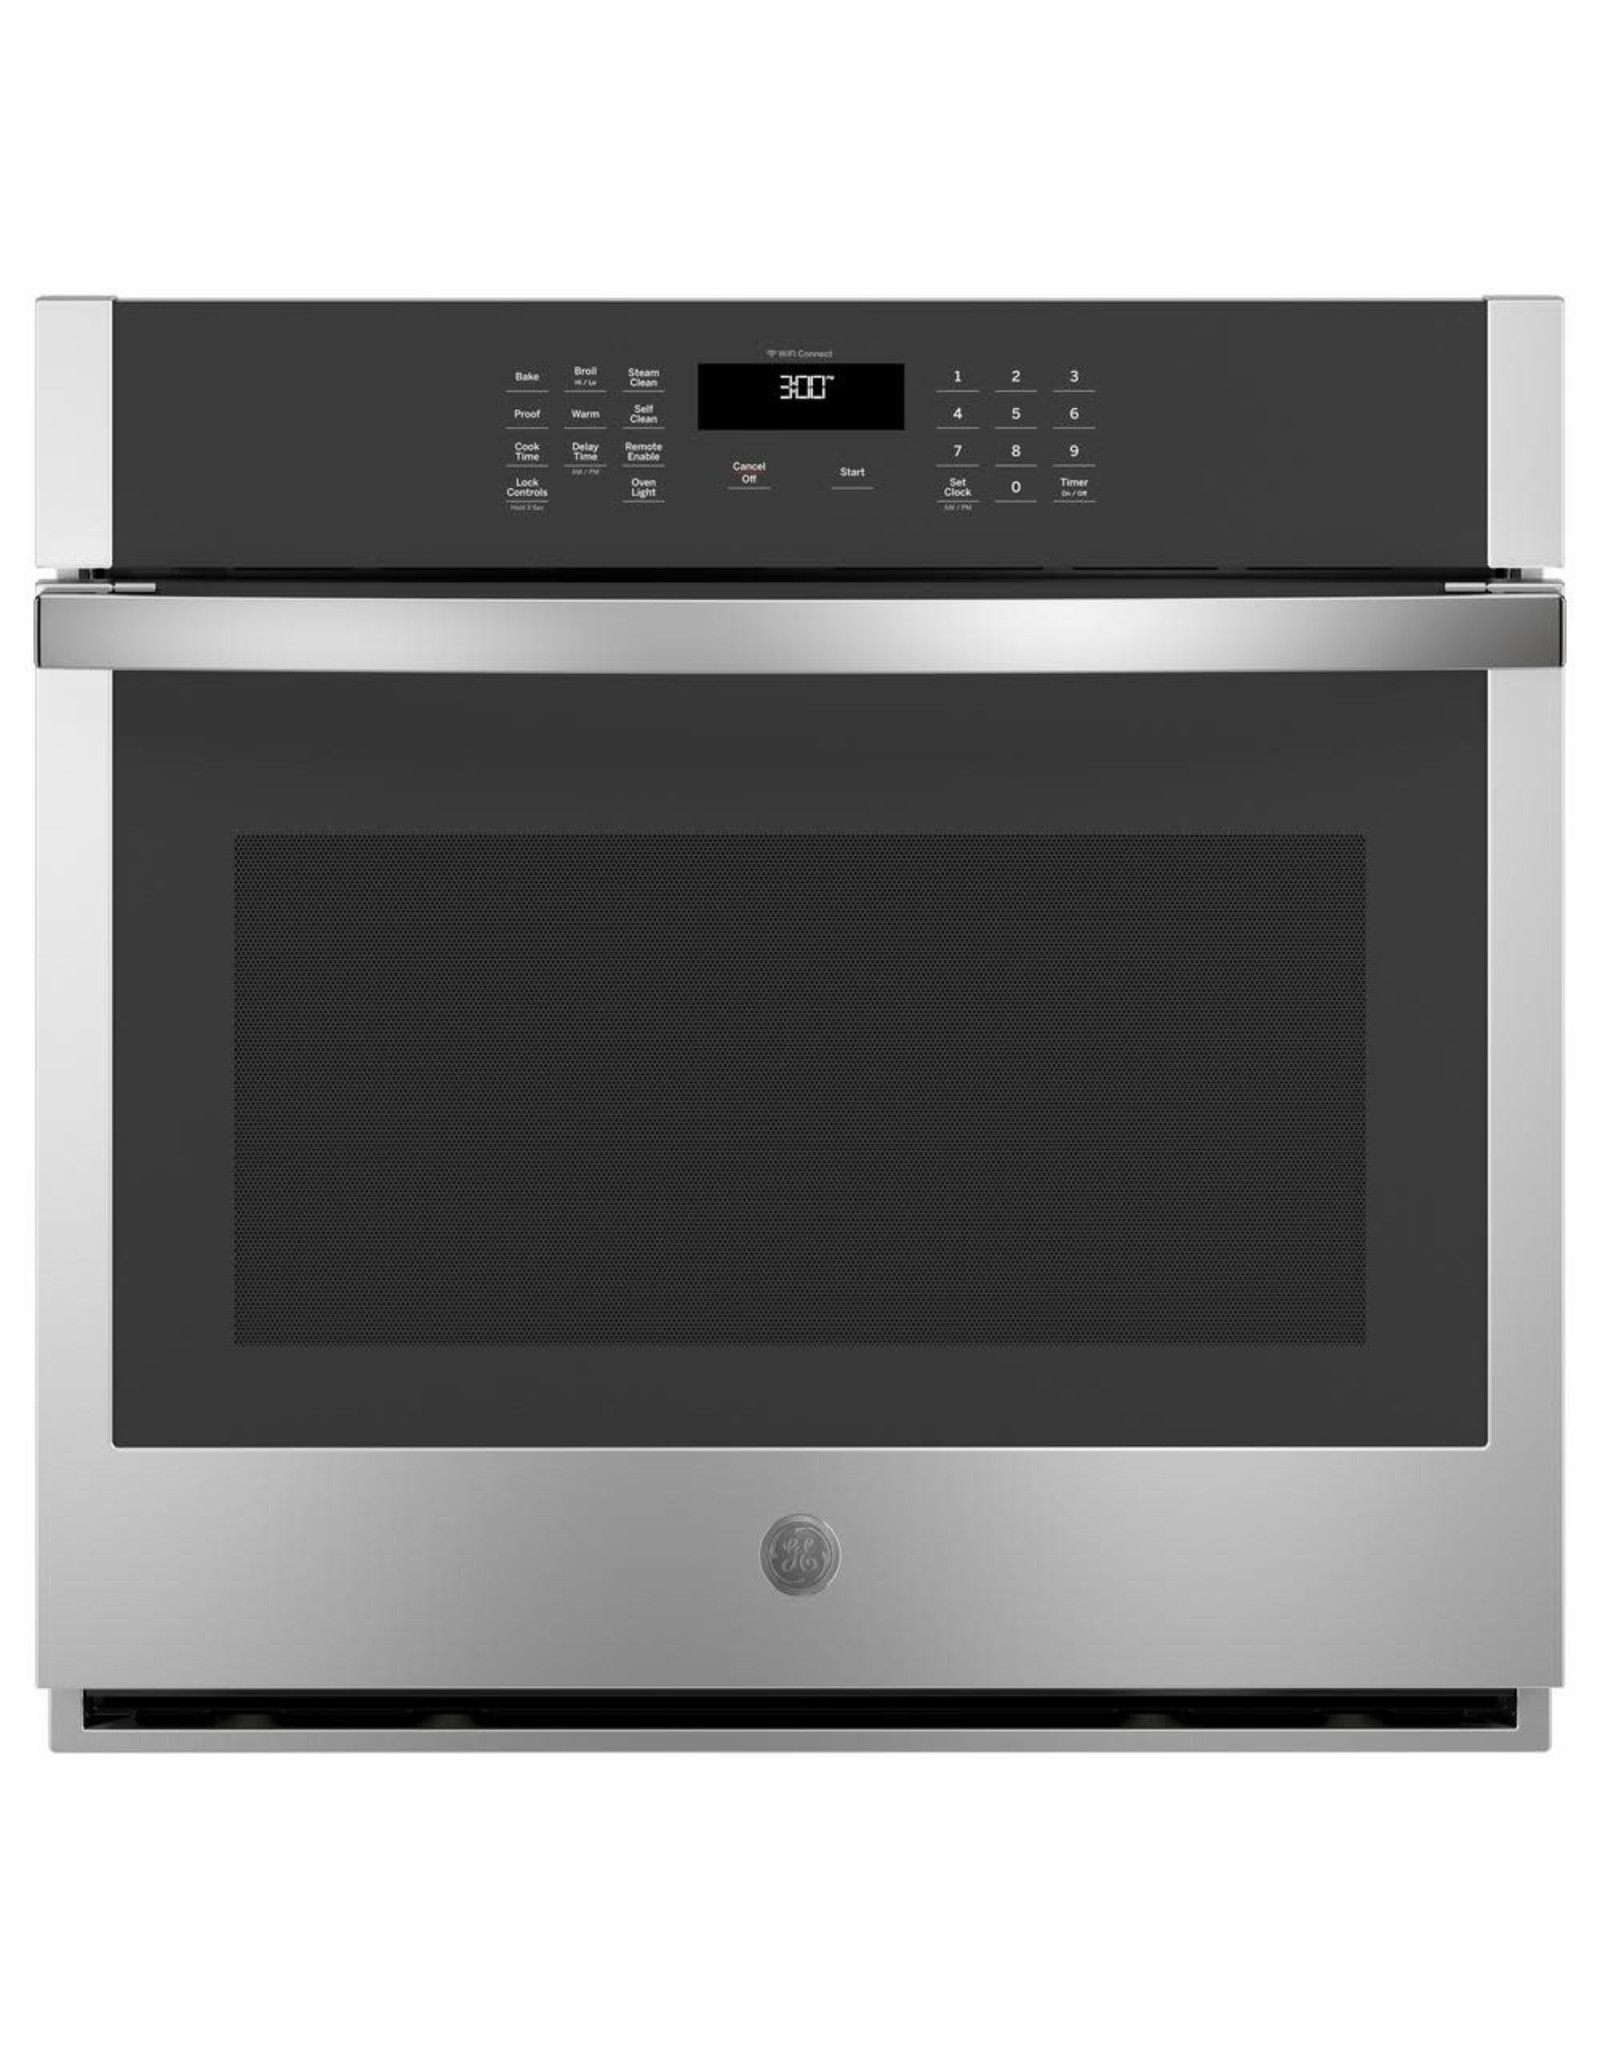 GE JT3000SFSS 30 in. Single Electric Wall Oven Self-Cleaning with Steam in Stainless Steel